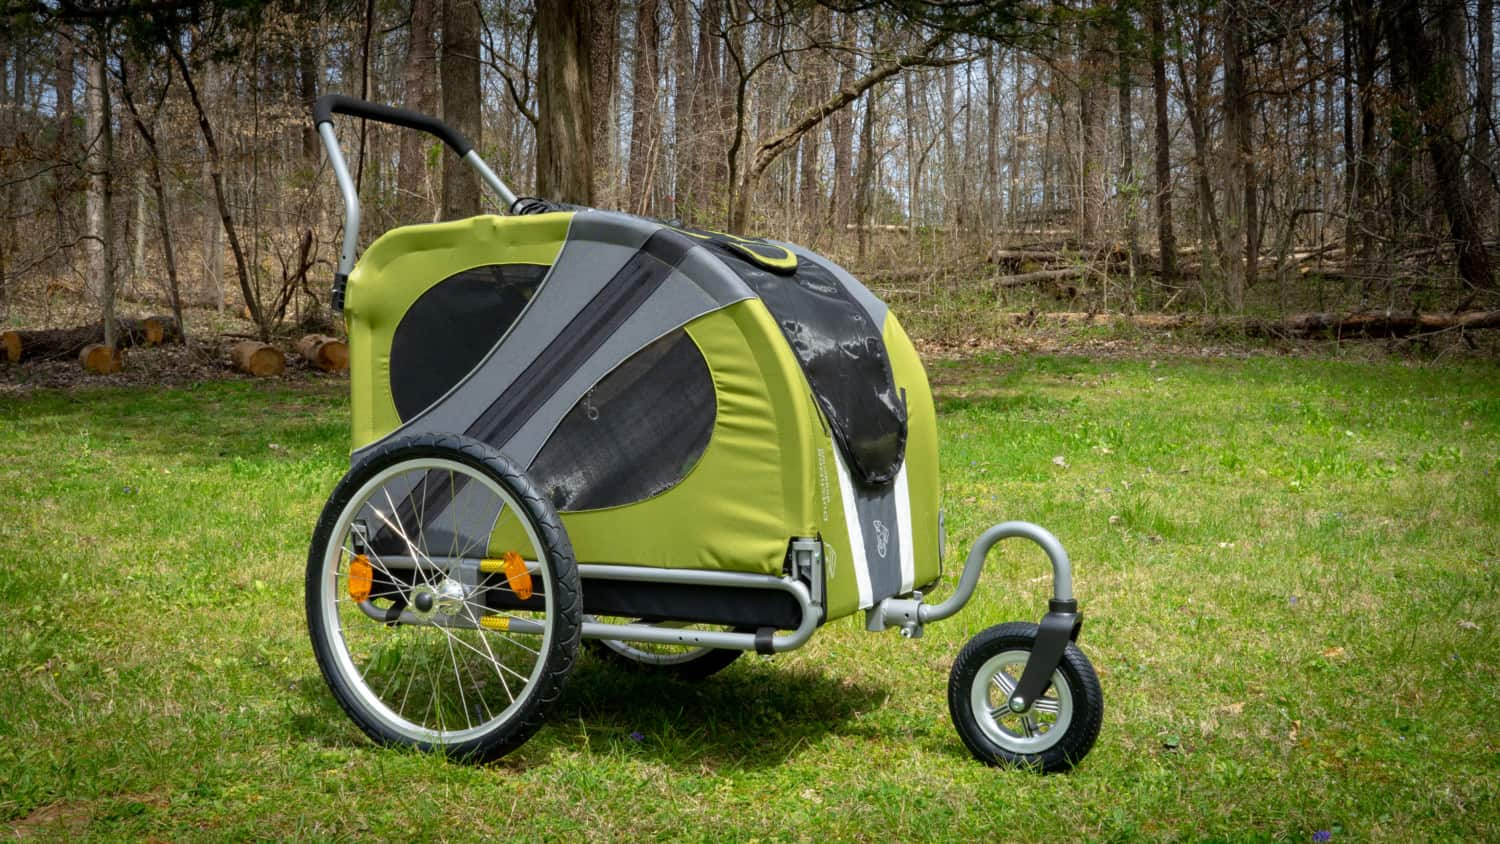 Green DoggyRide Novel Dog Jogger-Stroller